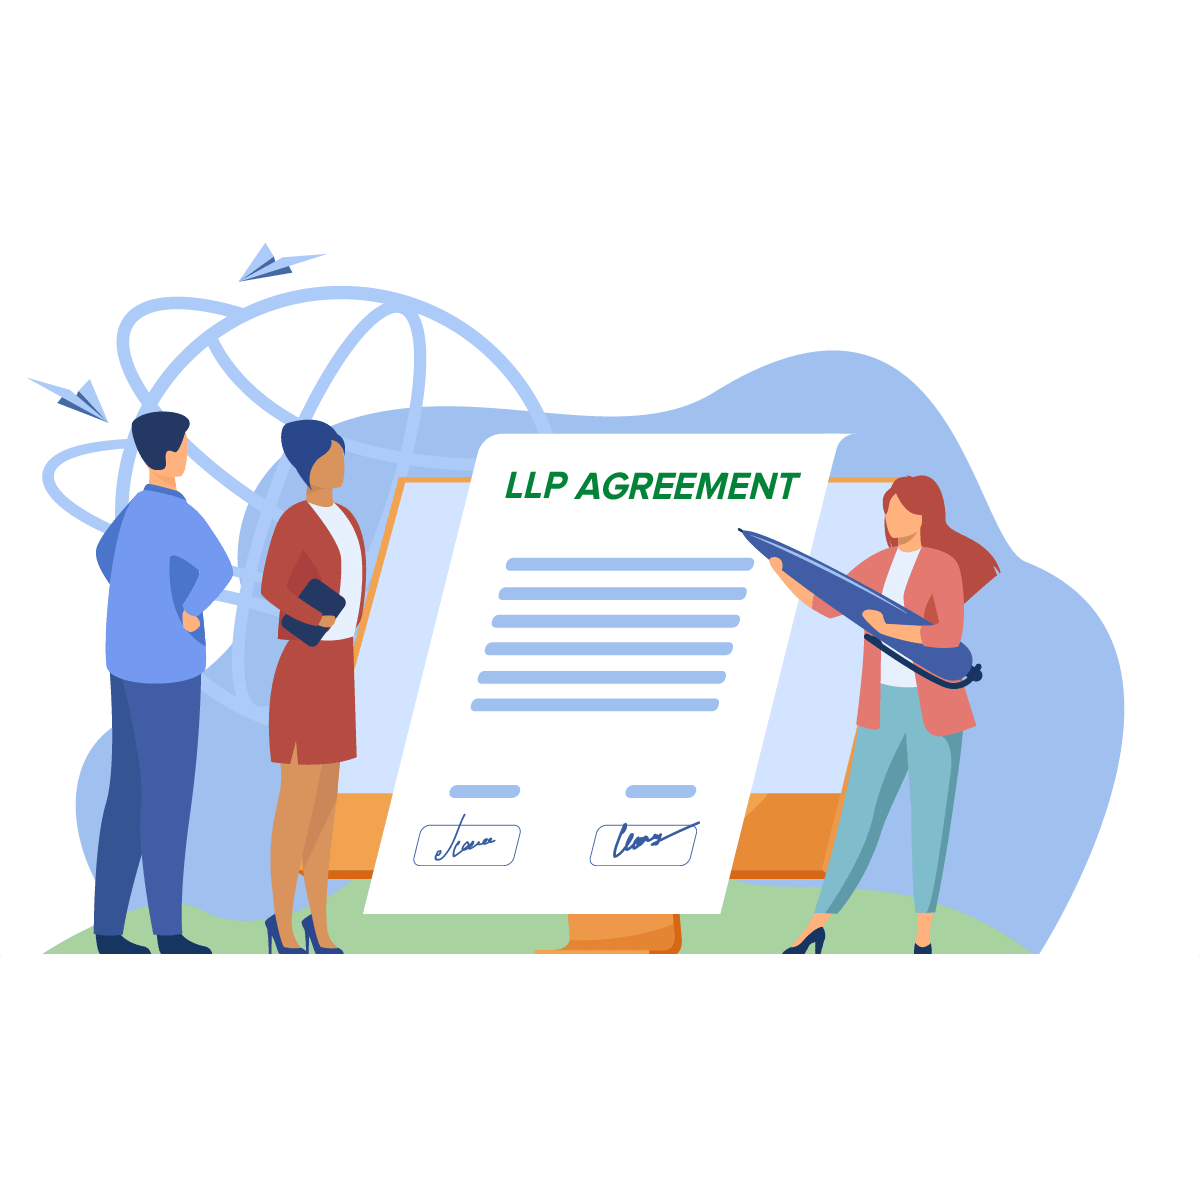 Changes in LLP agreement